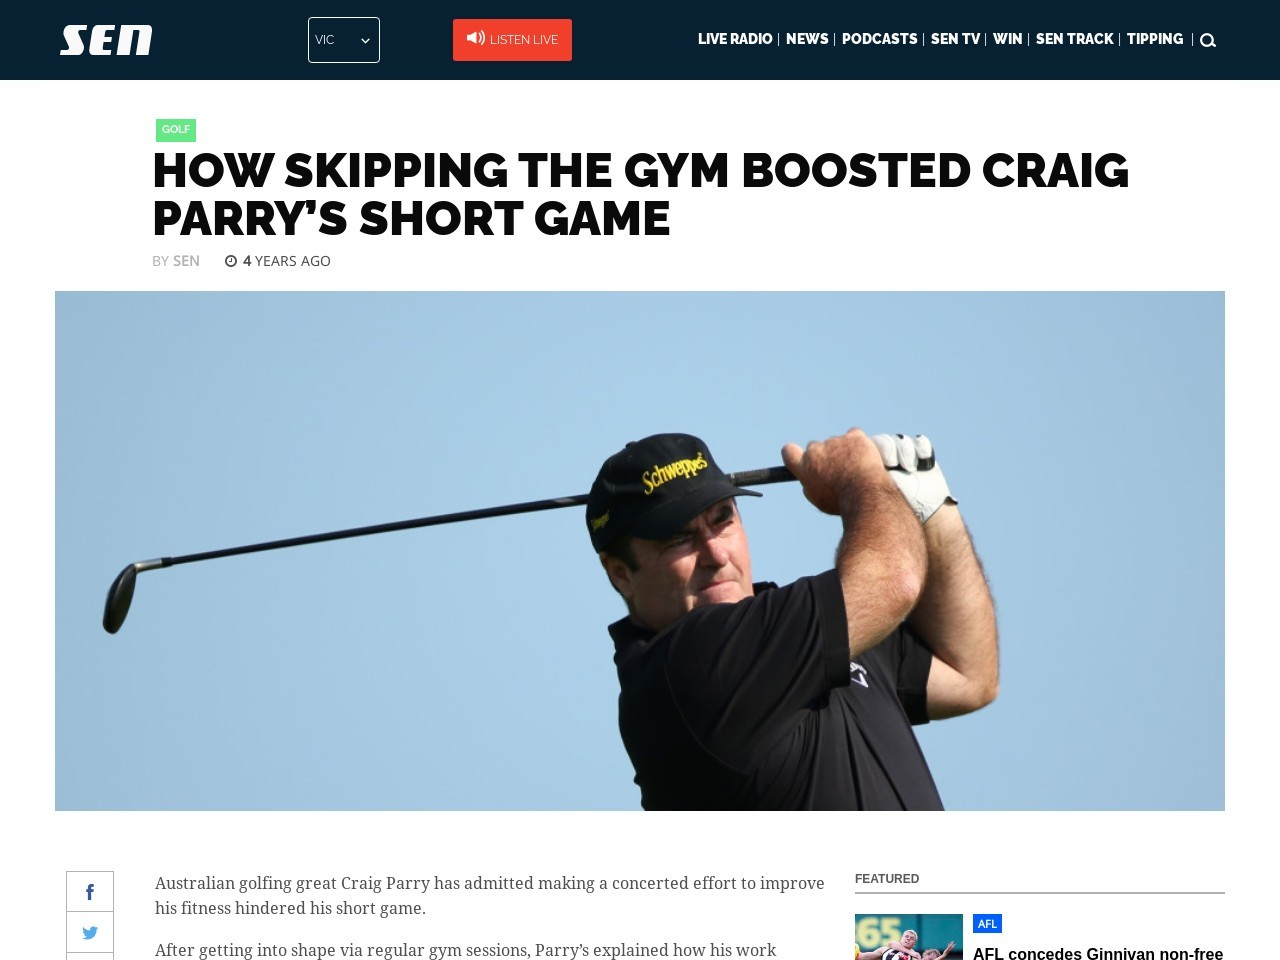 How skipping the gym boosted Craig Parry's short game